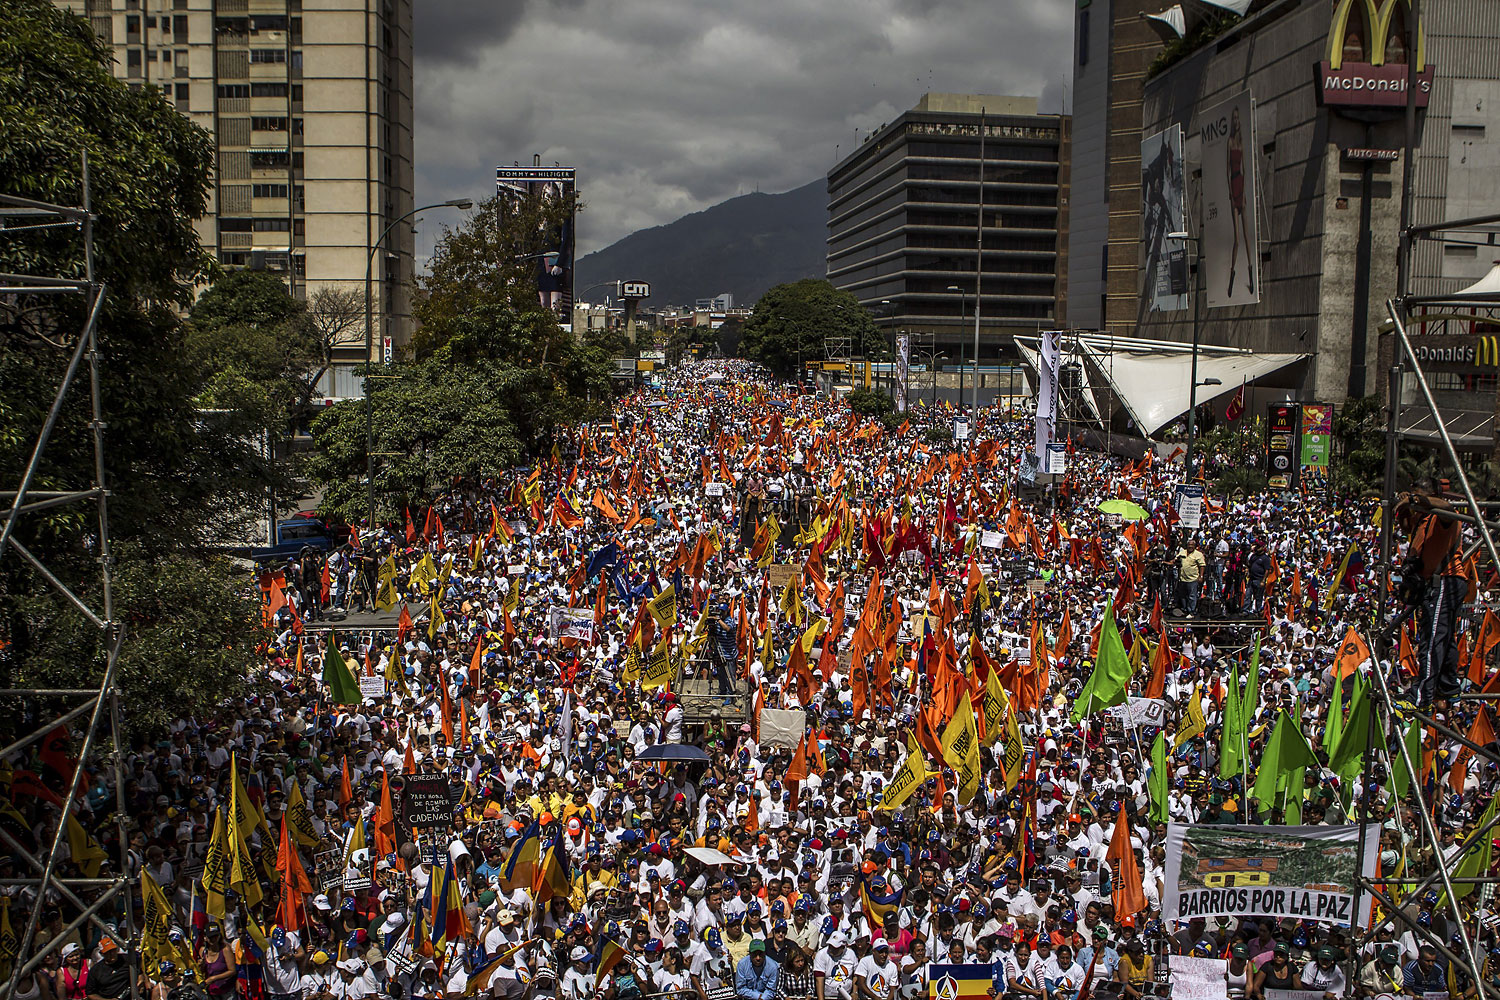 Supporters of the Venezuelan opposition rally on a street in Caracas, Feb. 22, 2014.